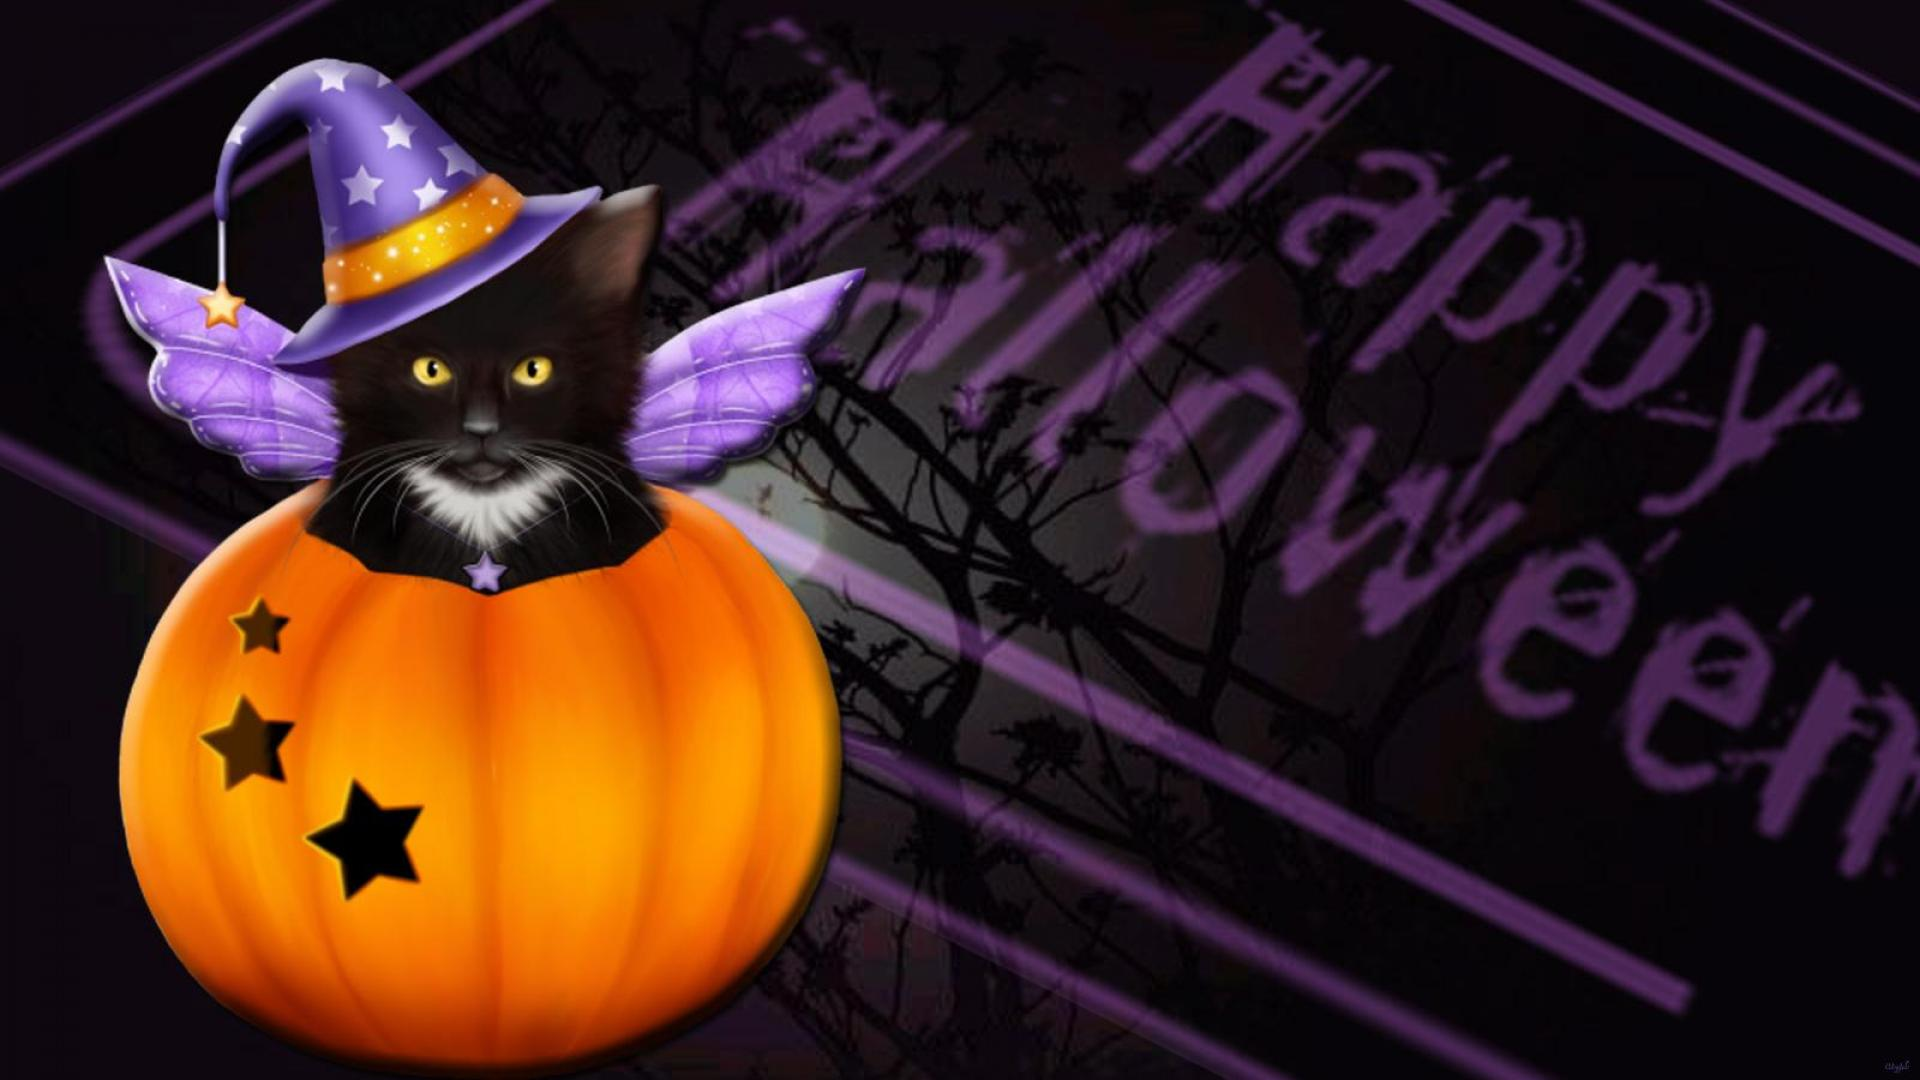 Halloween Cat Wallpaper - WallpaperSafari